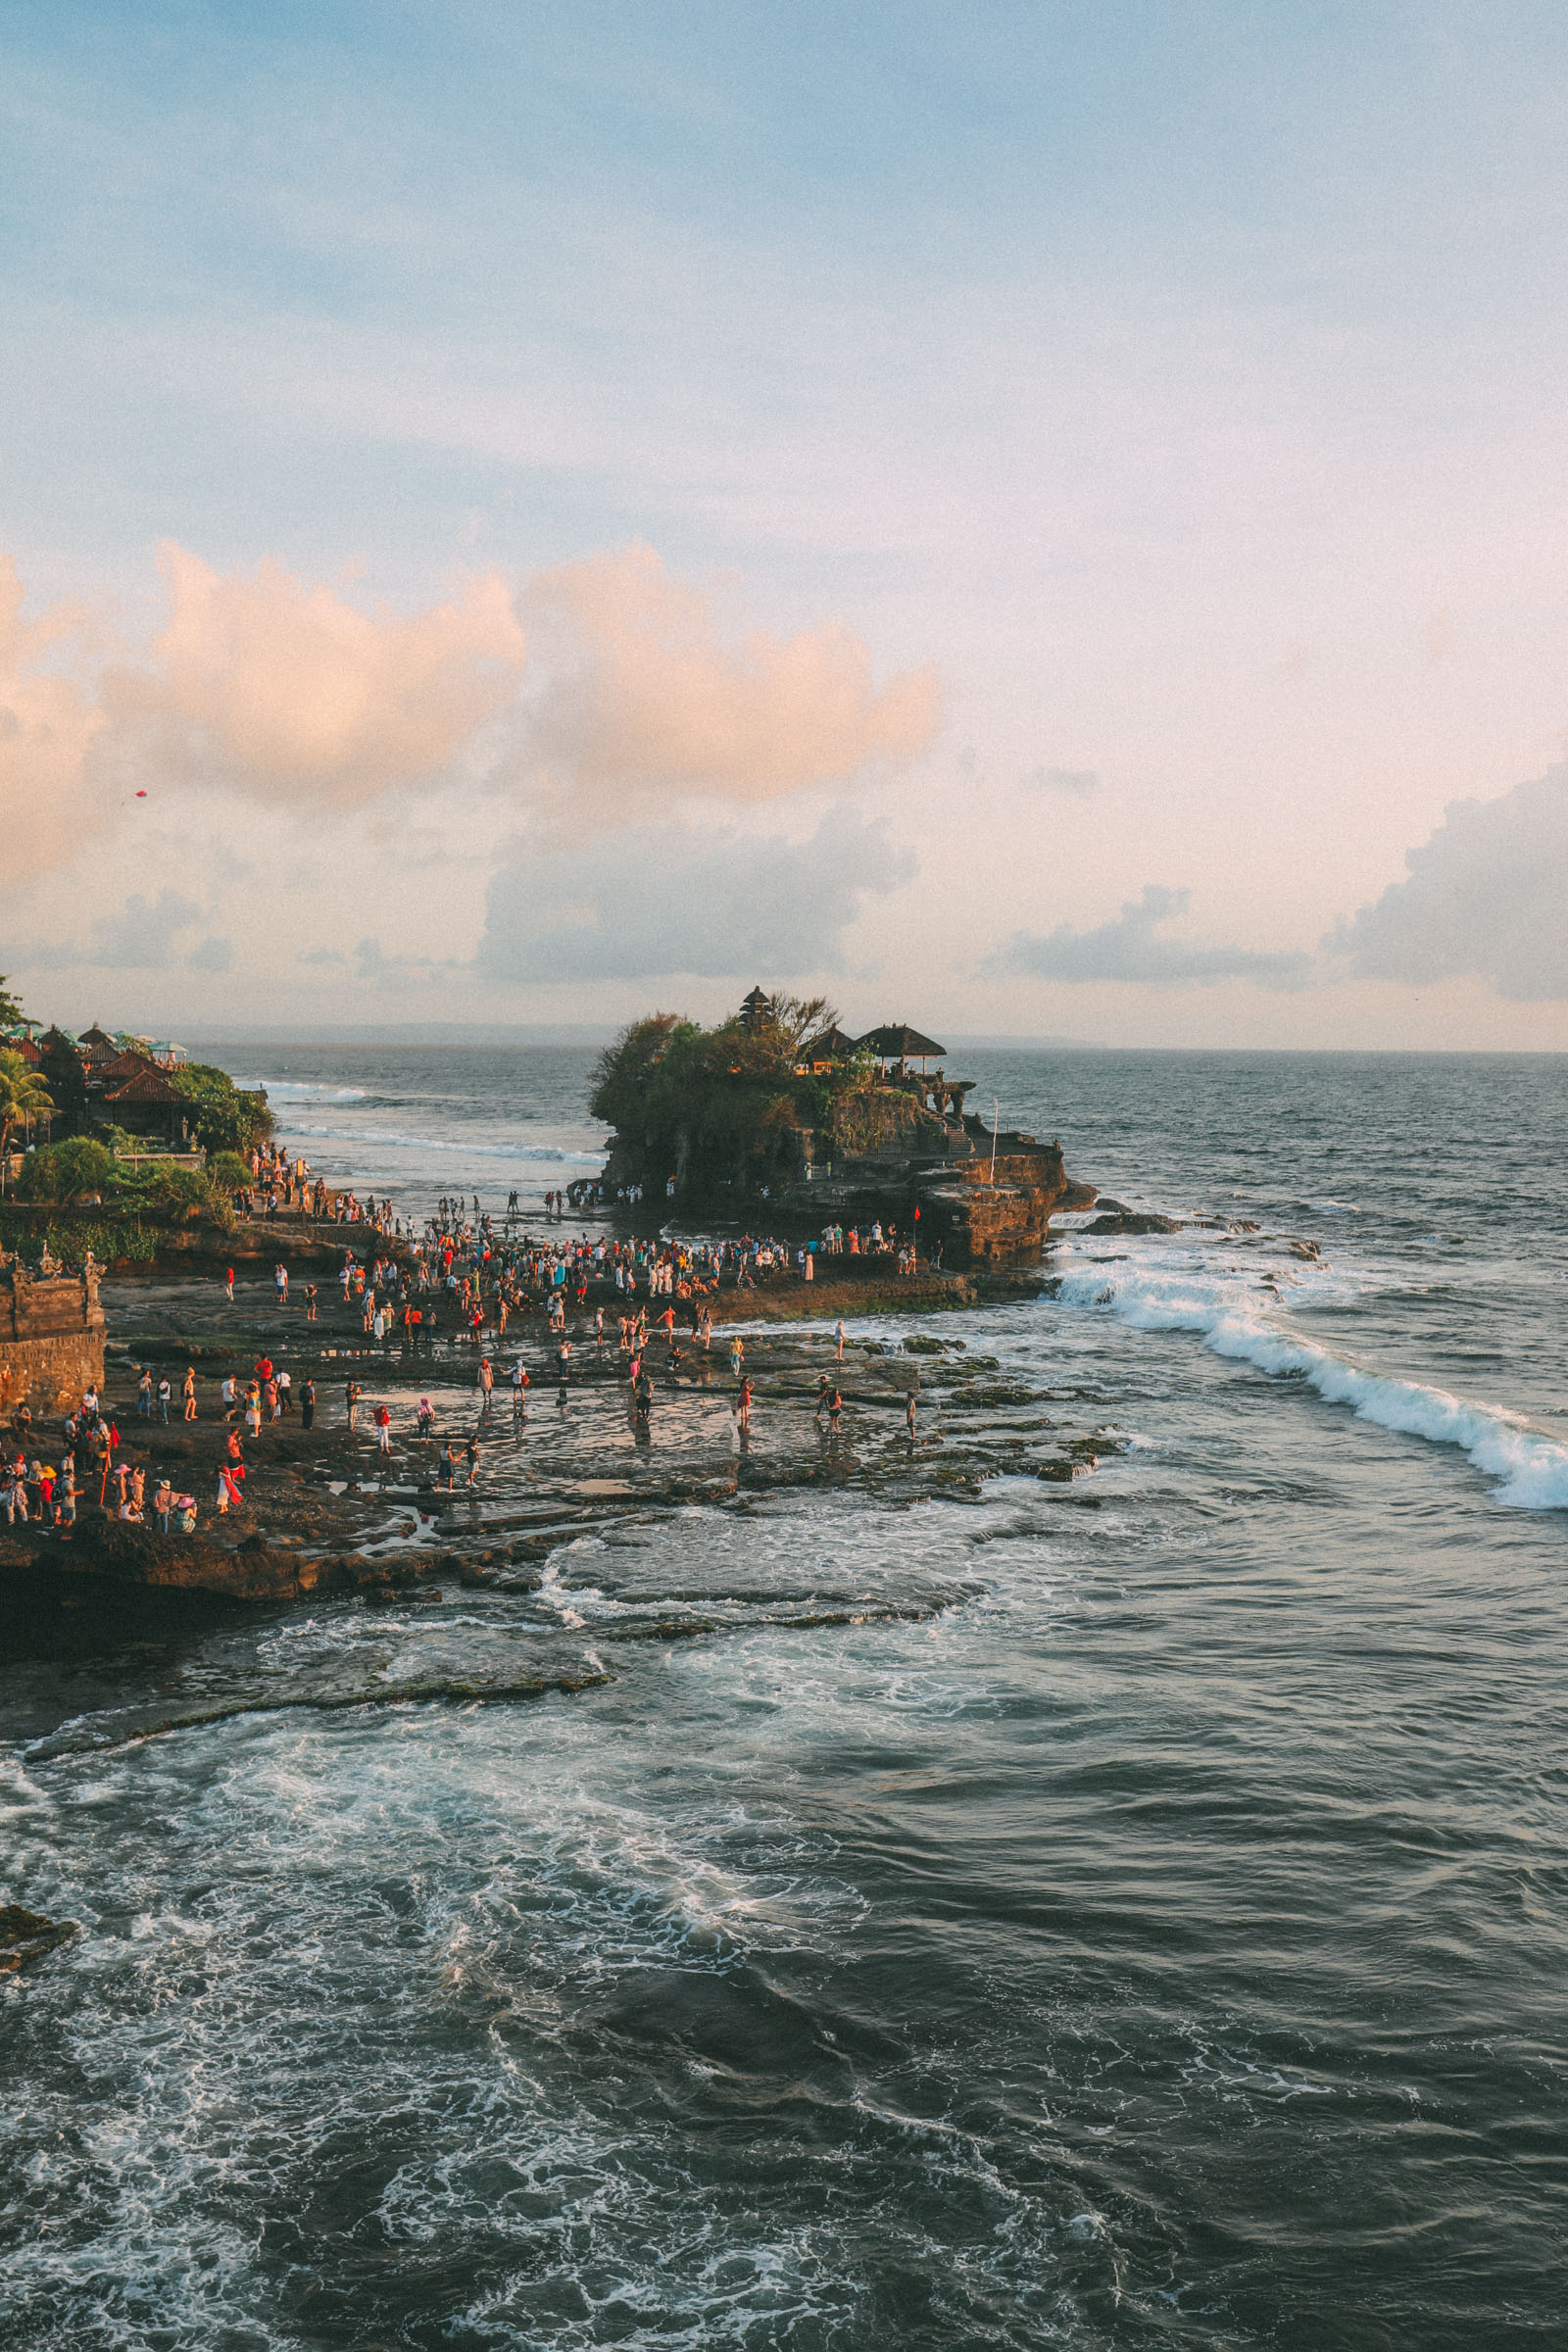 11 Amazing Temples You Have To Visit In Bali And Why! (11)